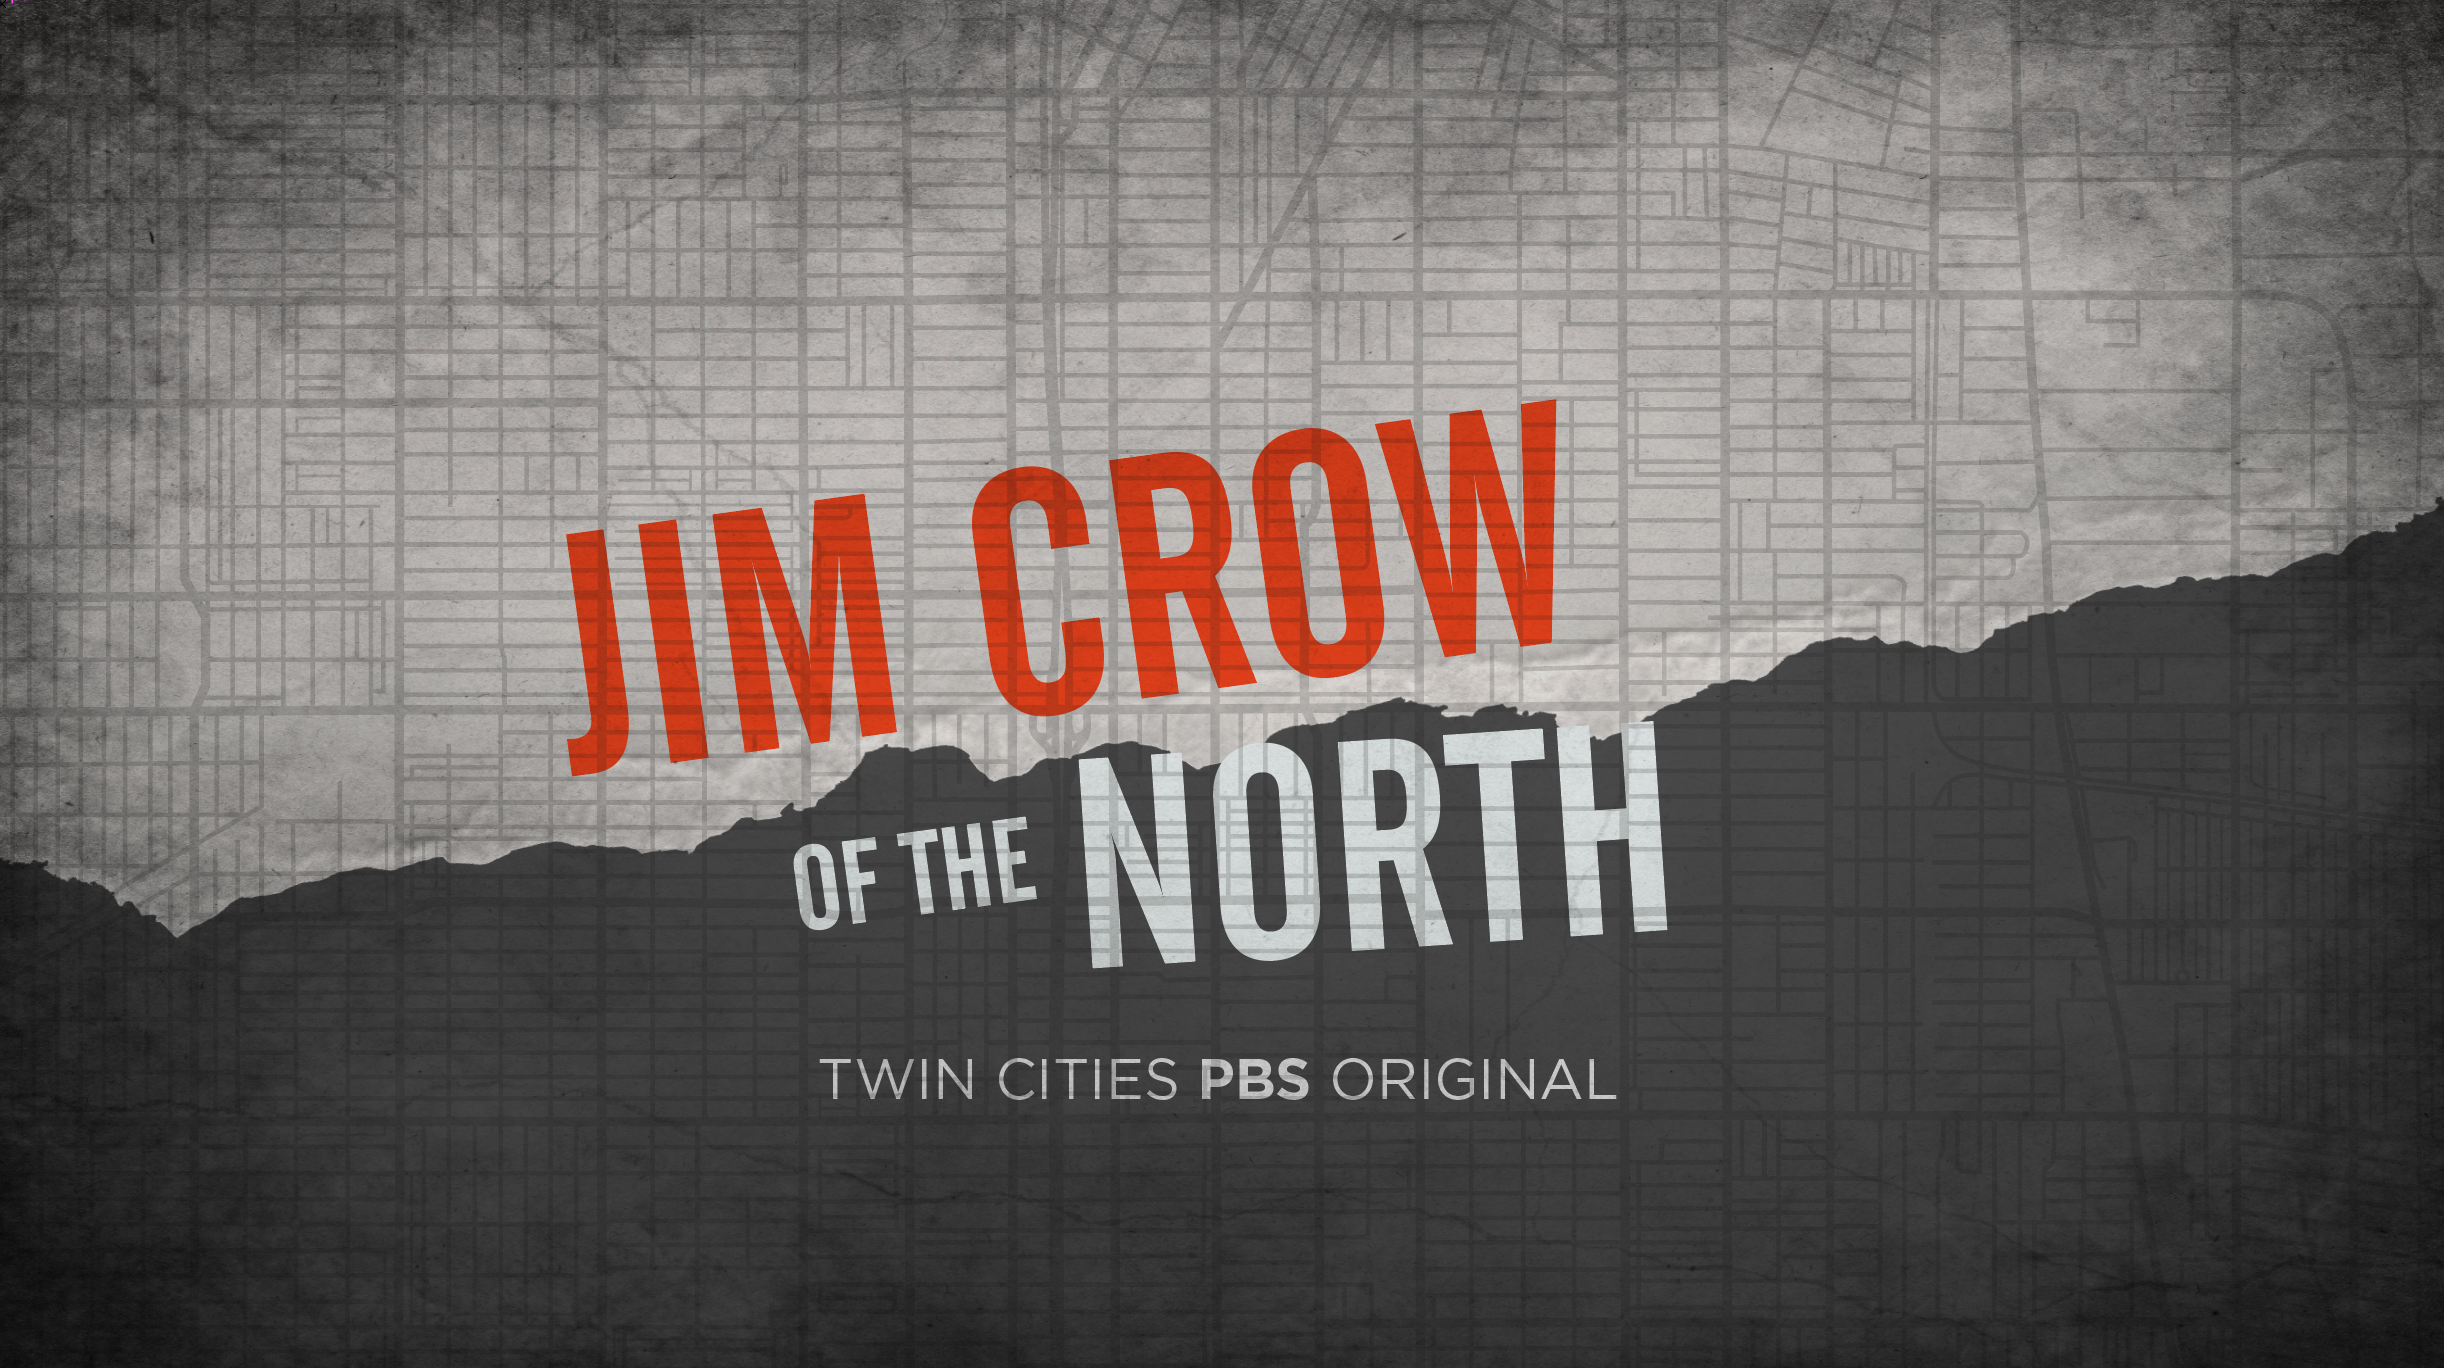 Jim Crow of the North Title Image